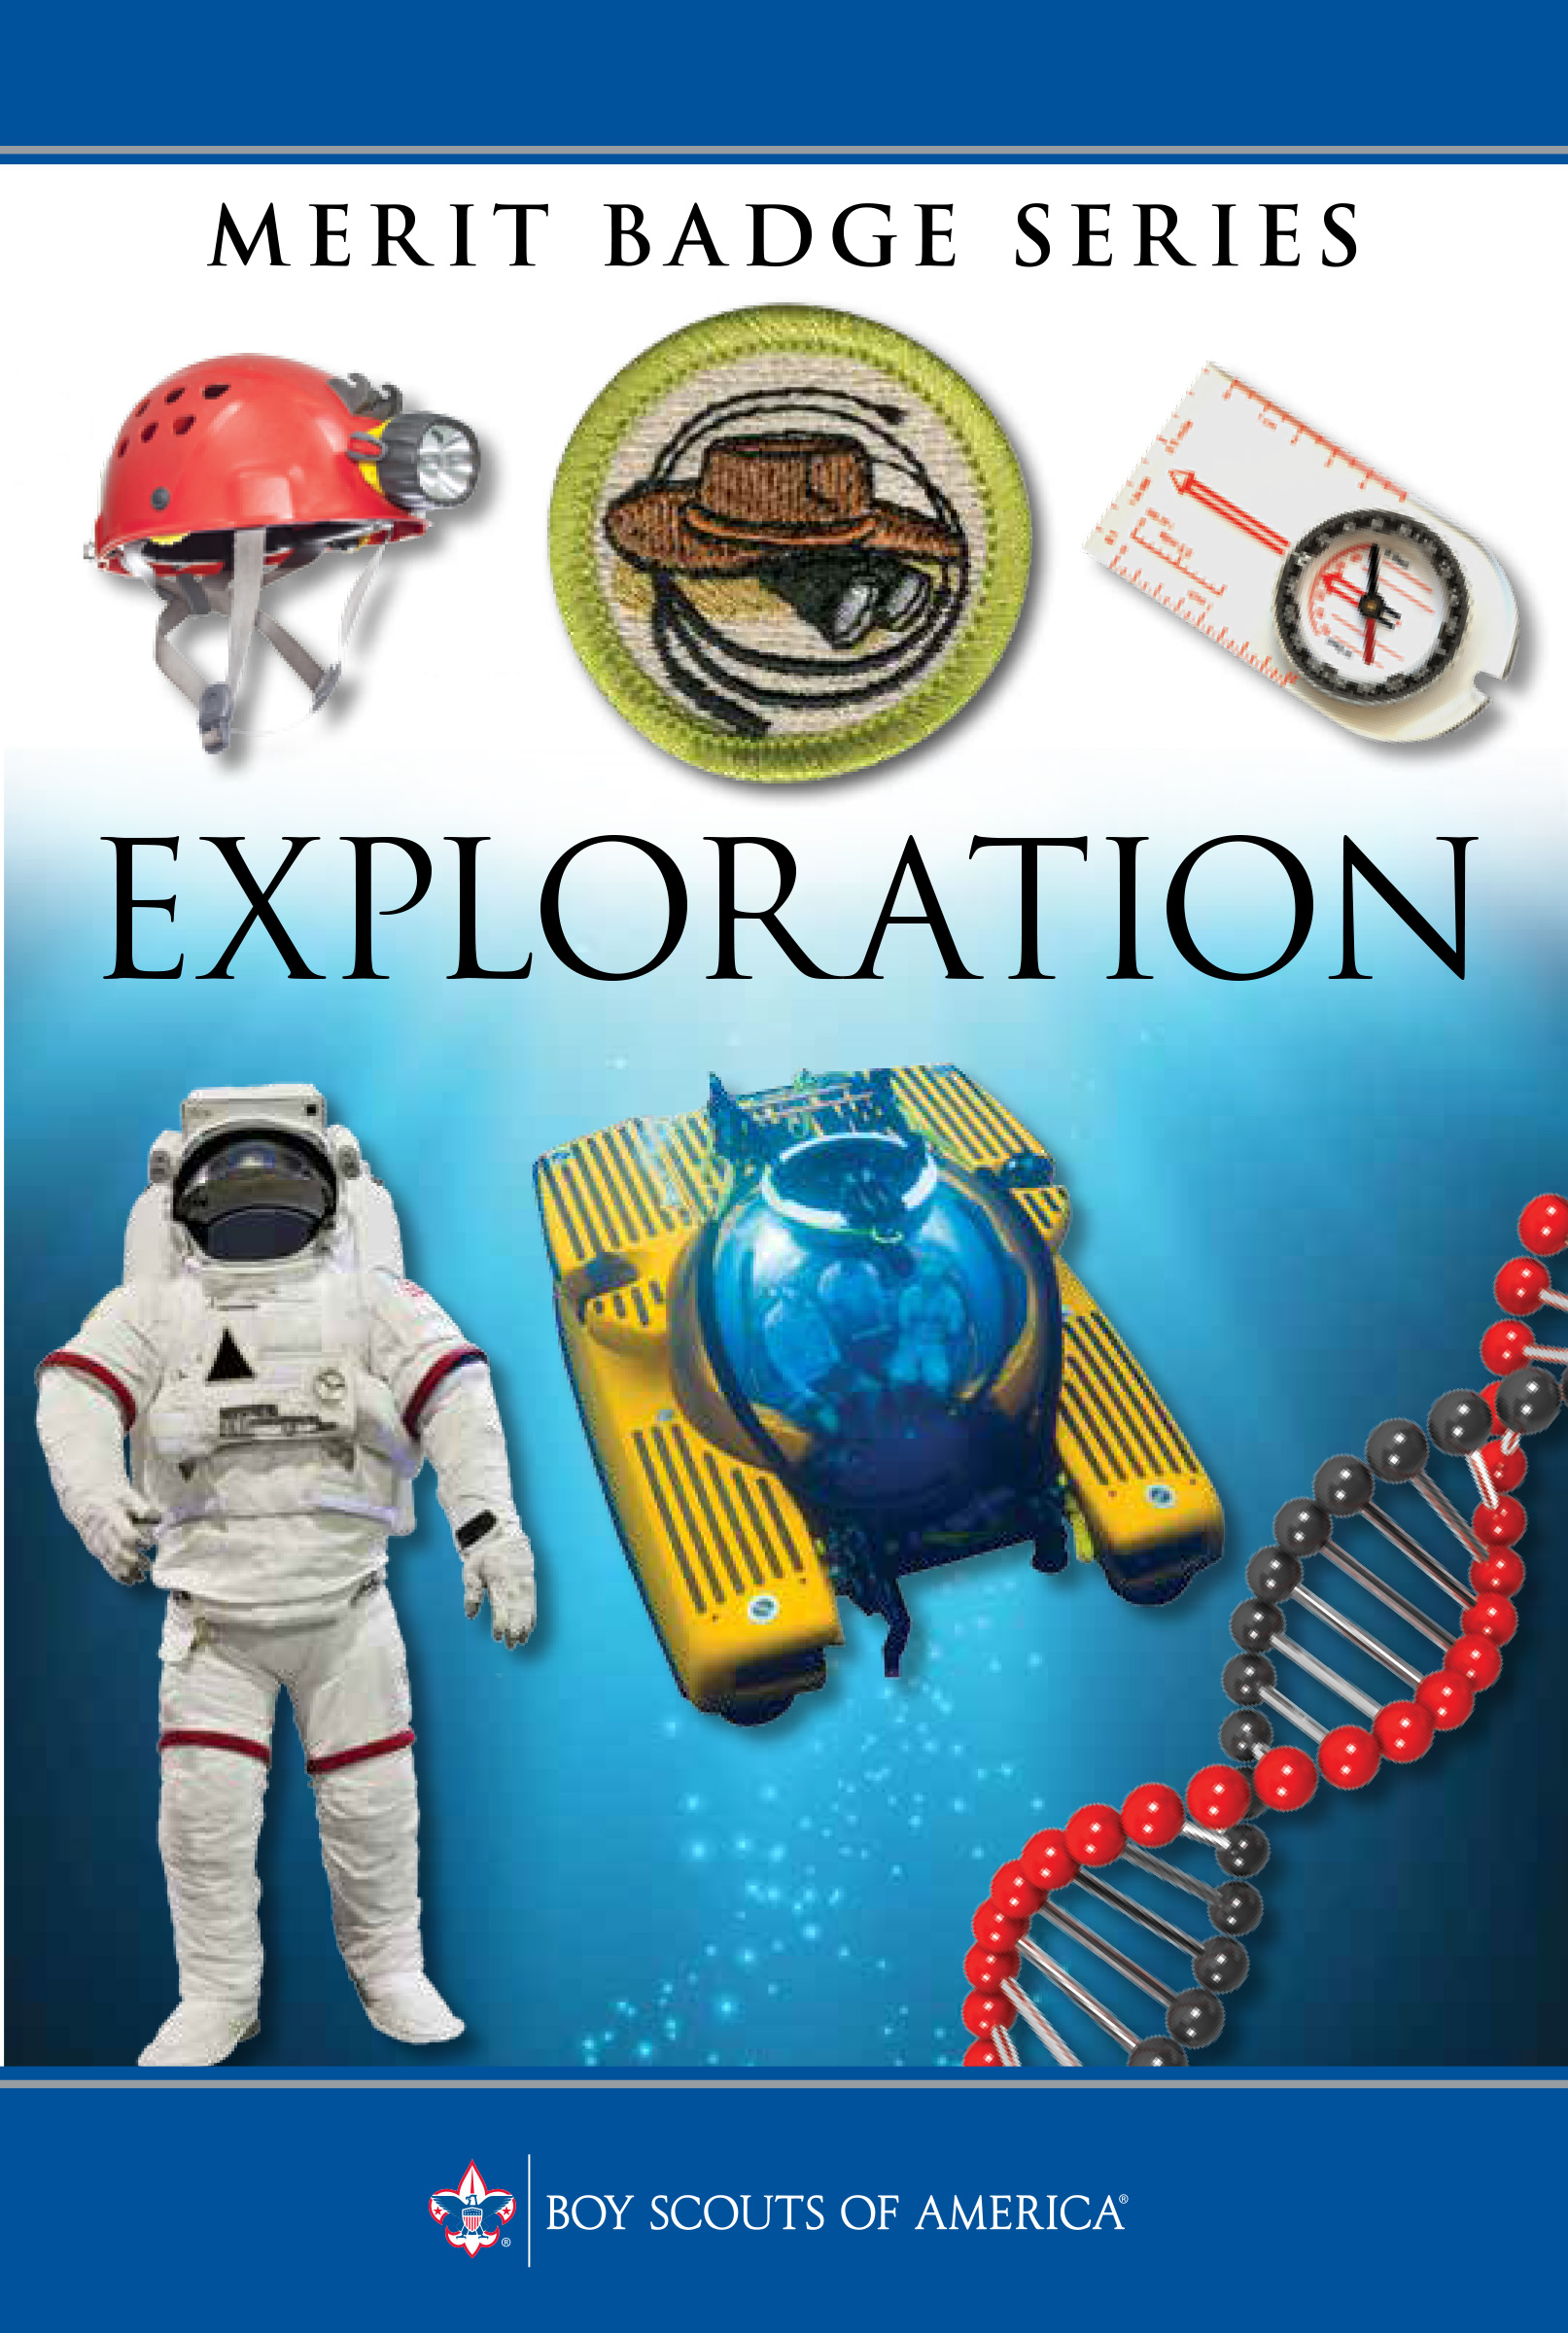 Uncategorized Space Exploration Merit Badge Worksheet bsa releases exploration merit badge requirements and pamphlet how to promote the badge